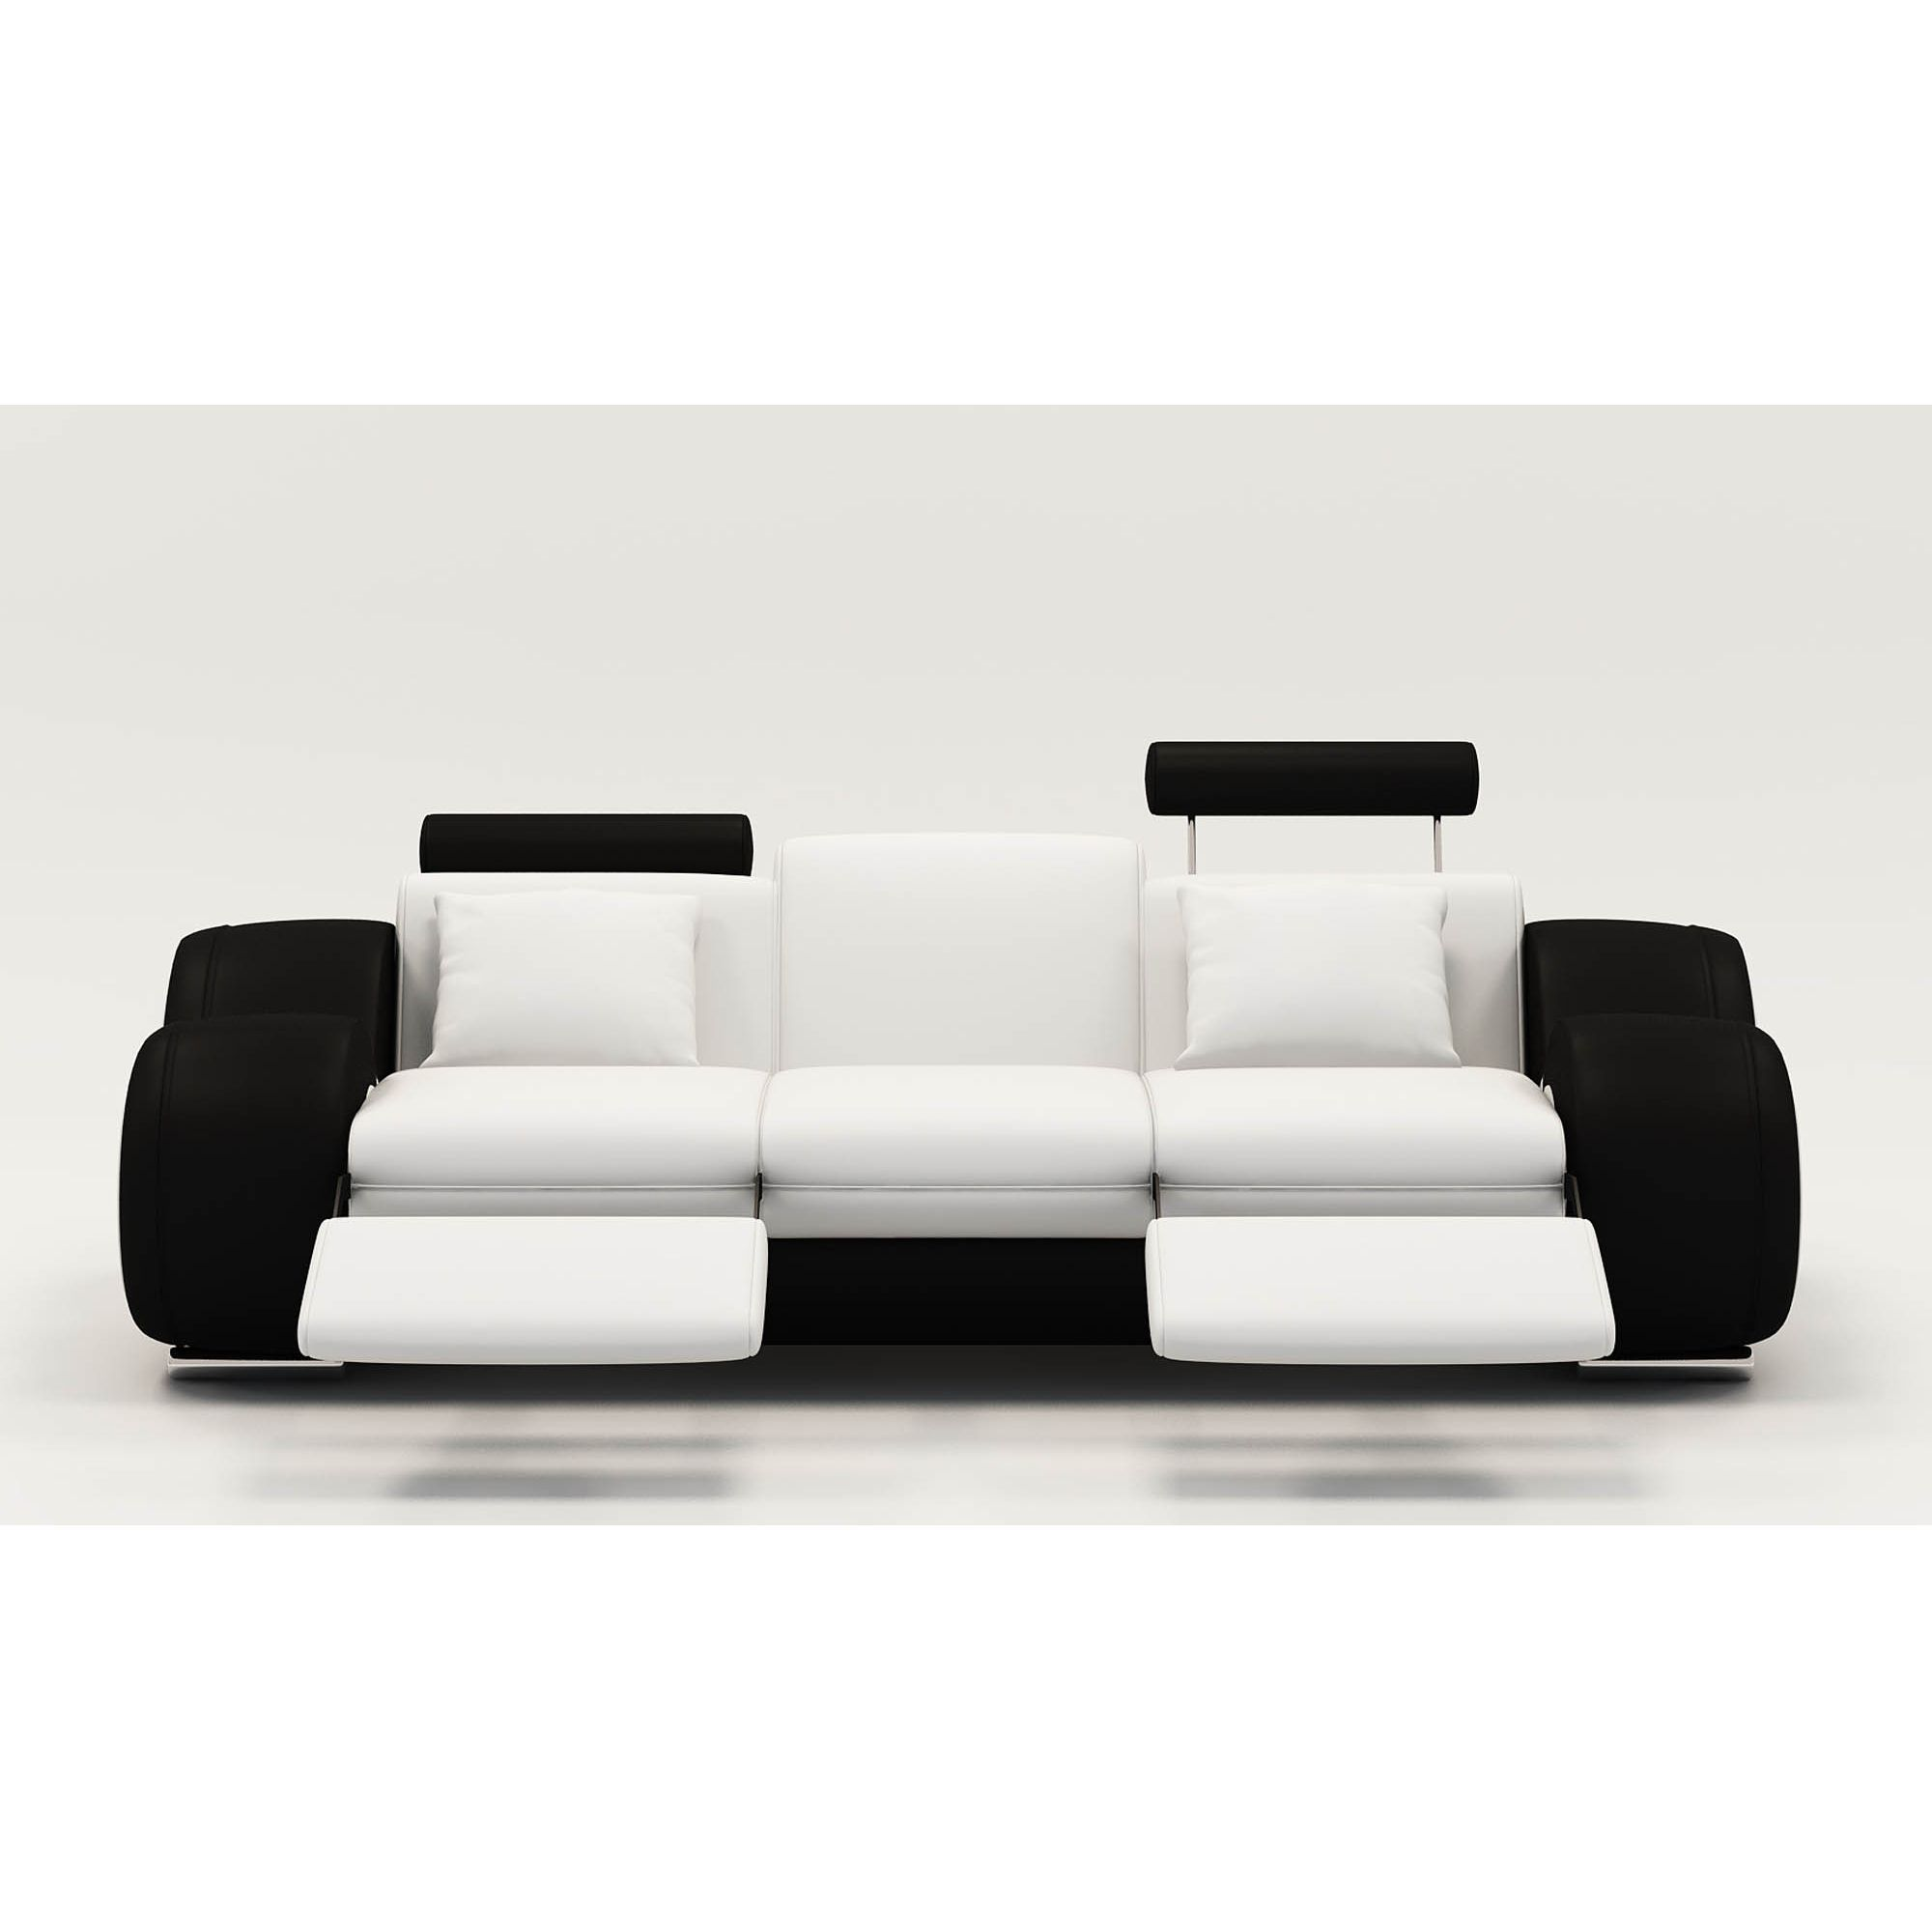 Deco in paris canape design 3 places cuir noir et blanc for Canape cuir noir design